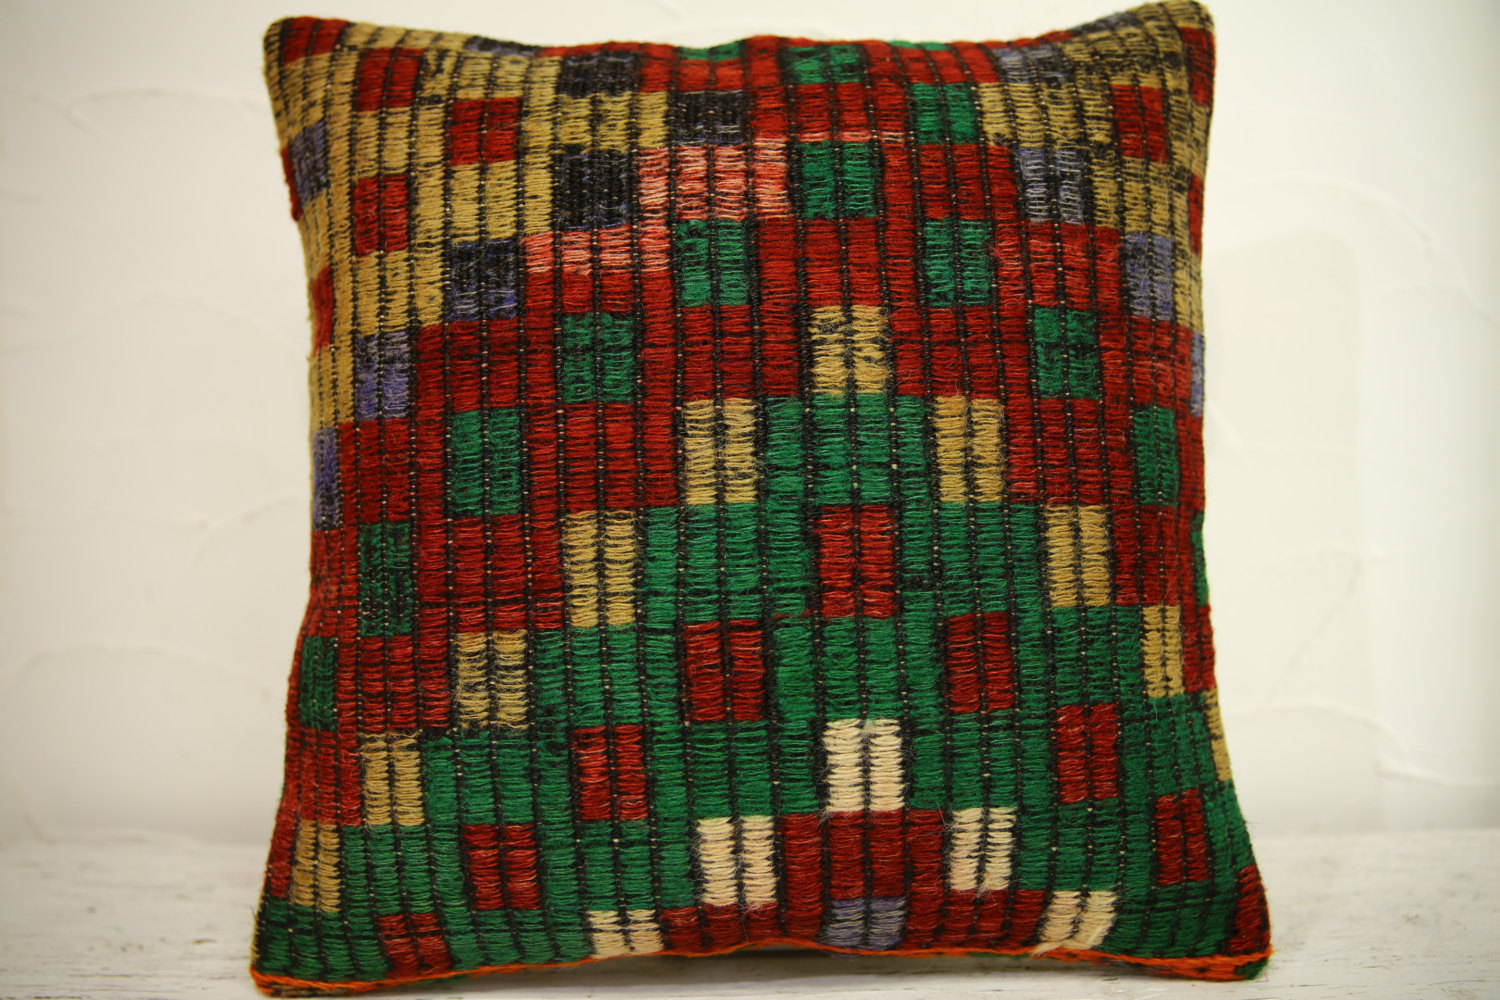 Kilim Pillows | 16x16 | Turkish pillows | 1200 | Accent Pillow,Decorative Pillow